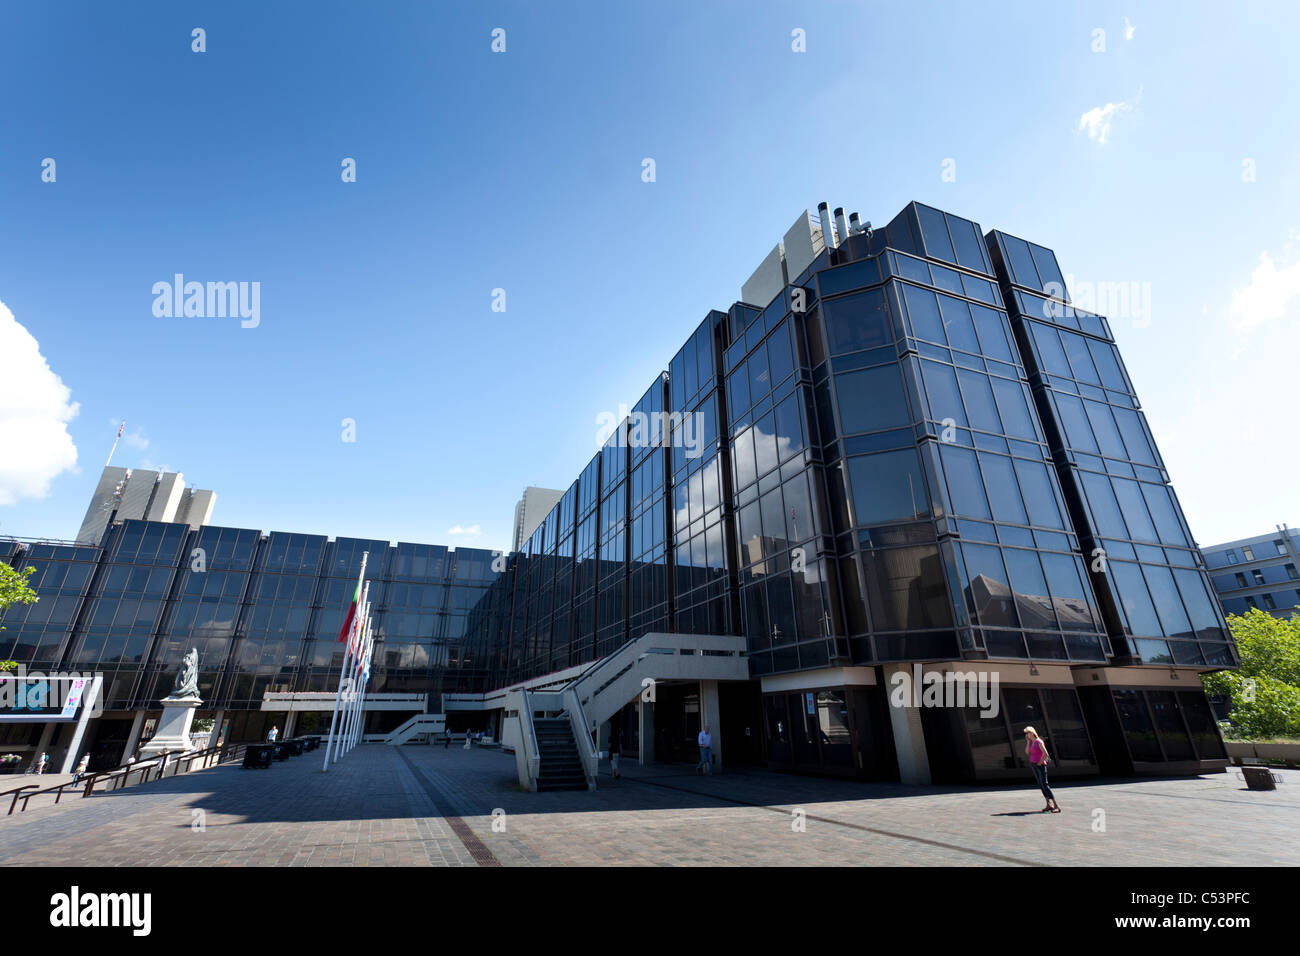 Portsmouth Civic Offices in Guildhall Square. - Stock Image